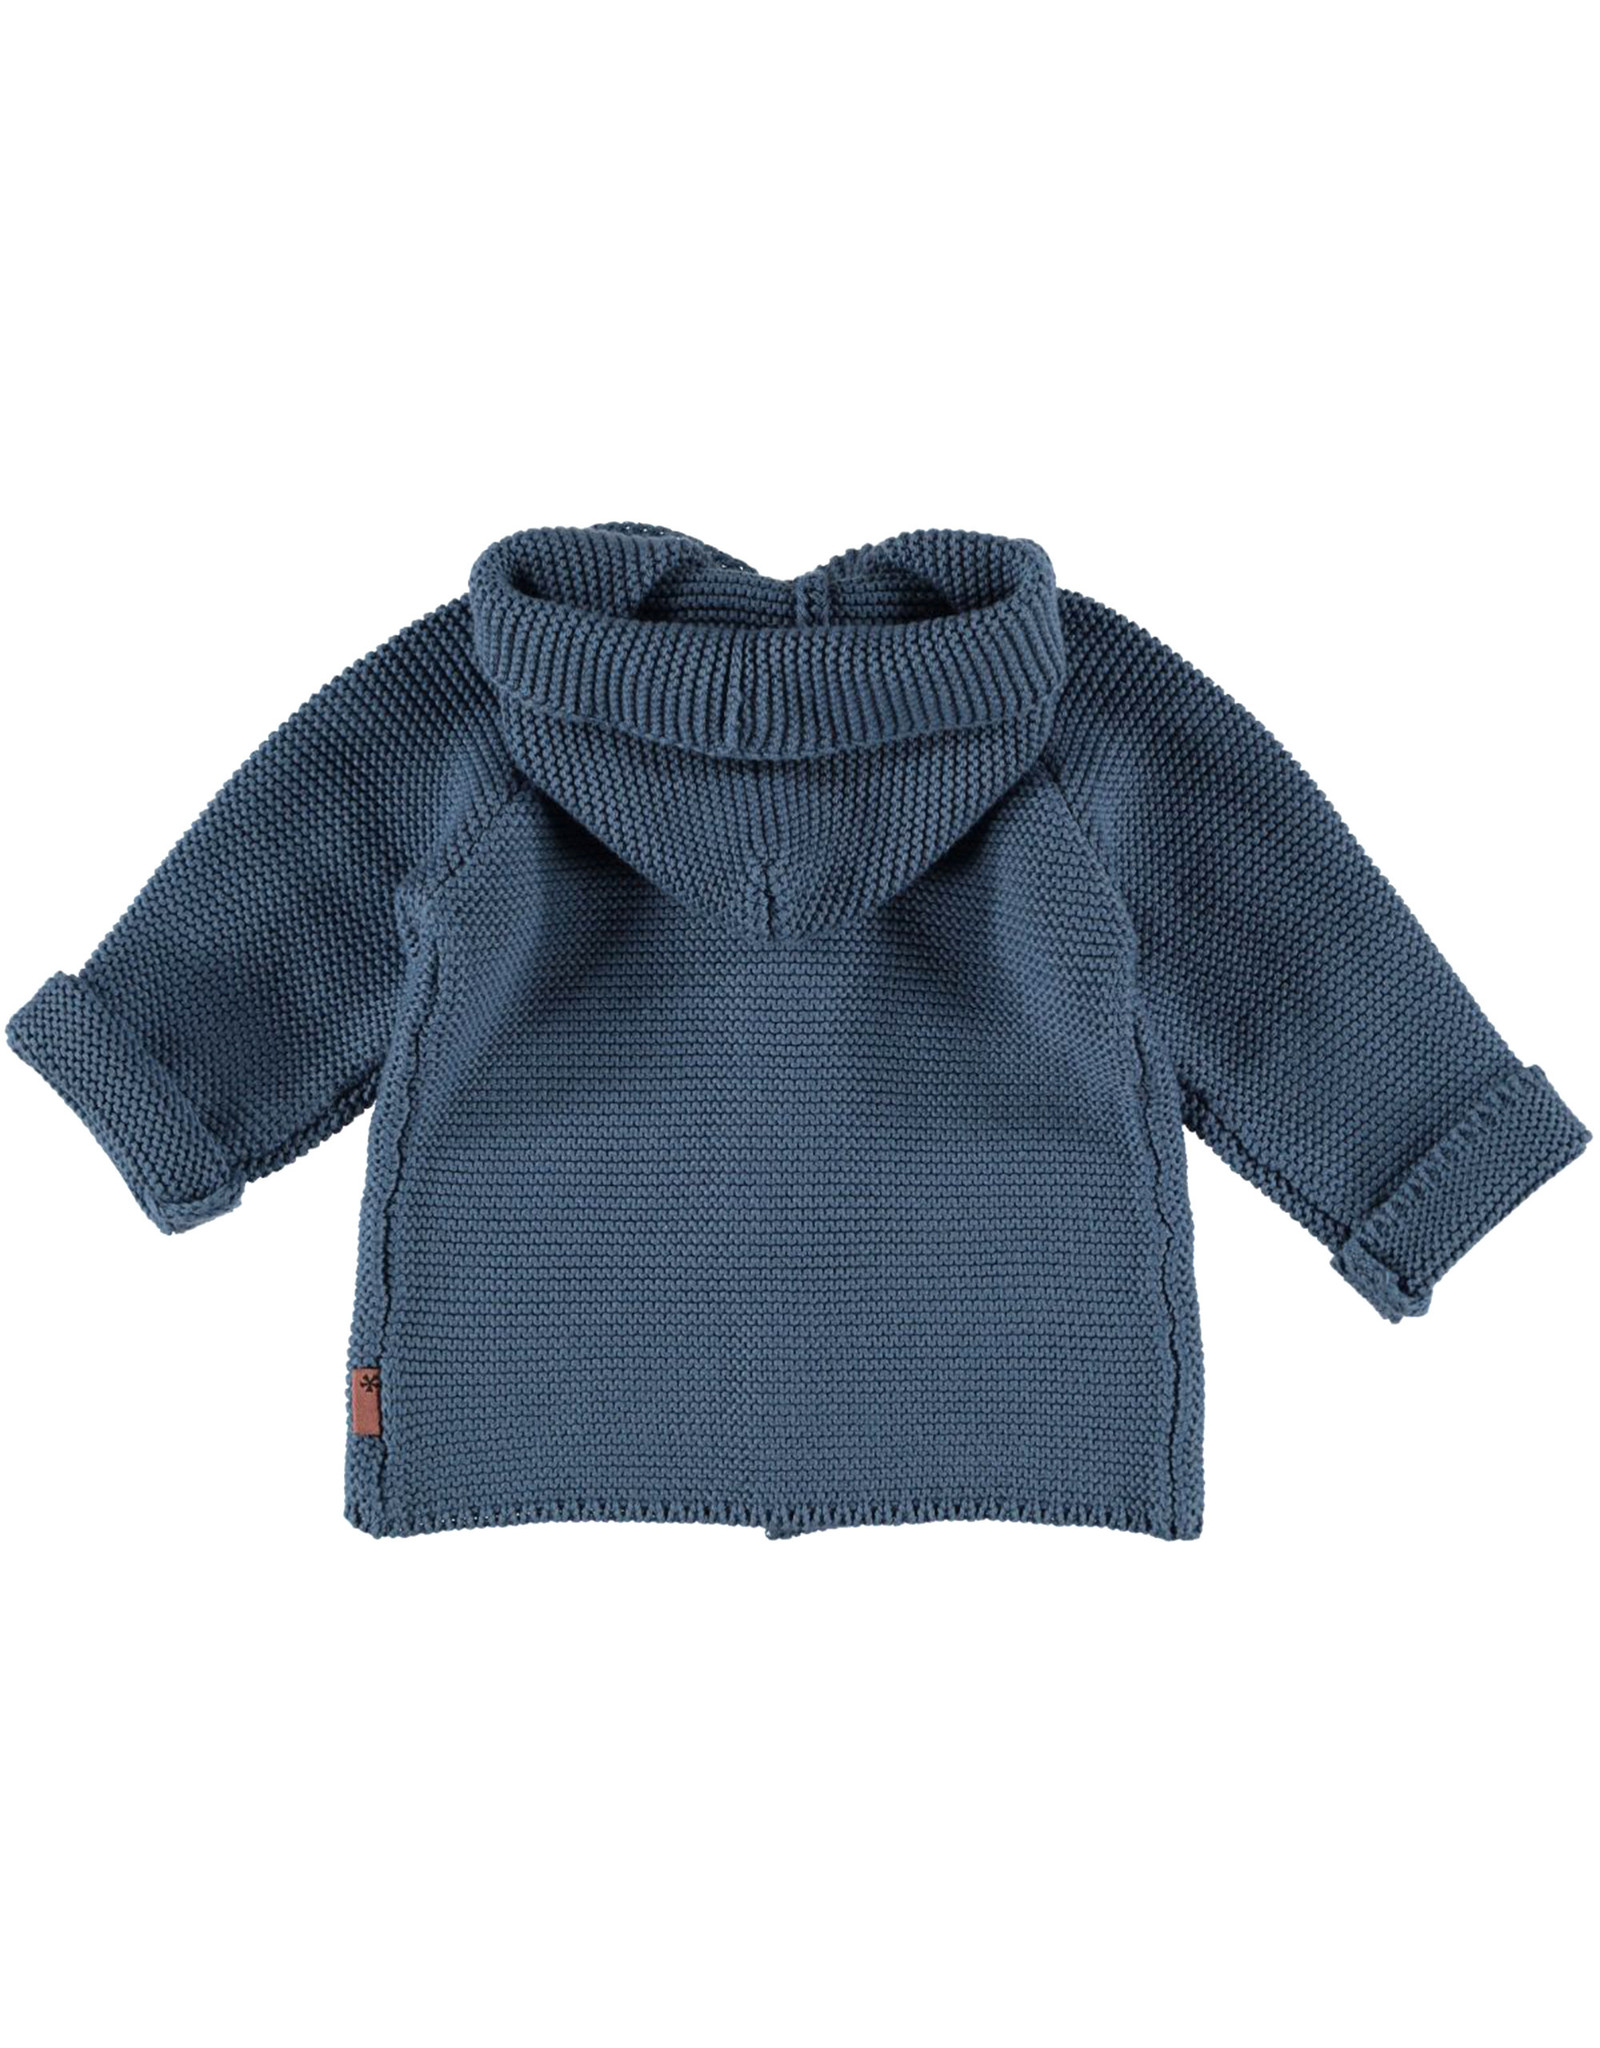 BESS Cardigan Knitted Blue